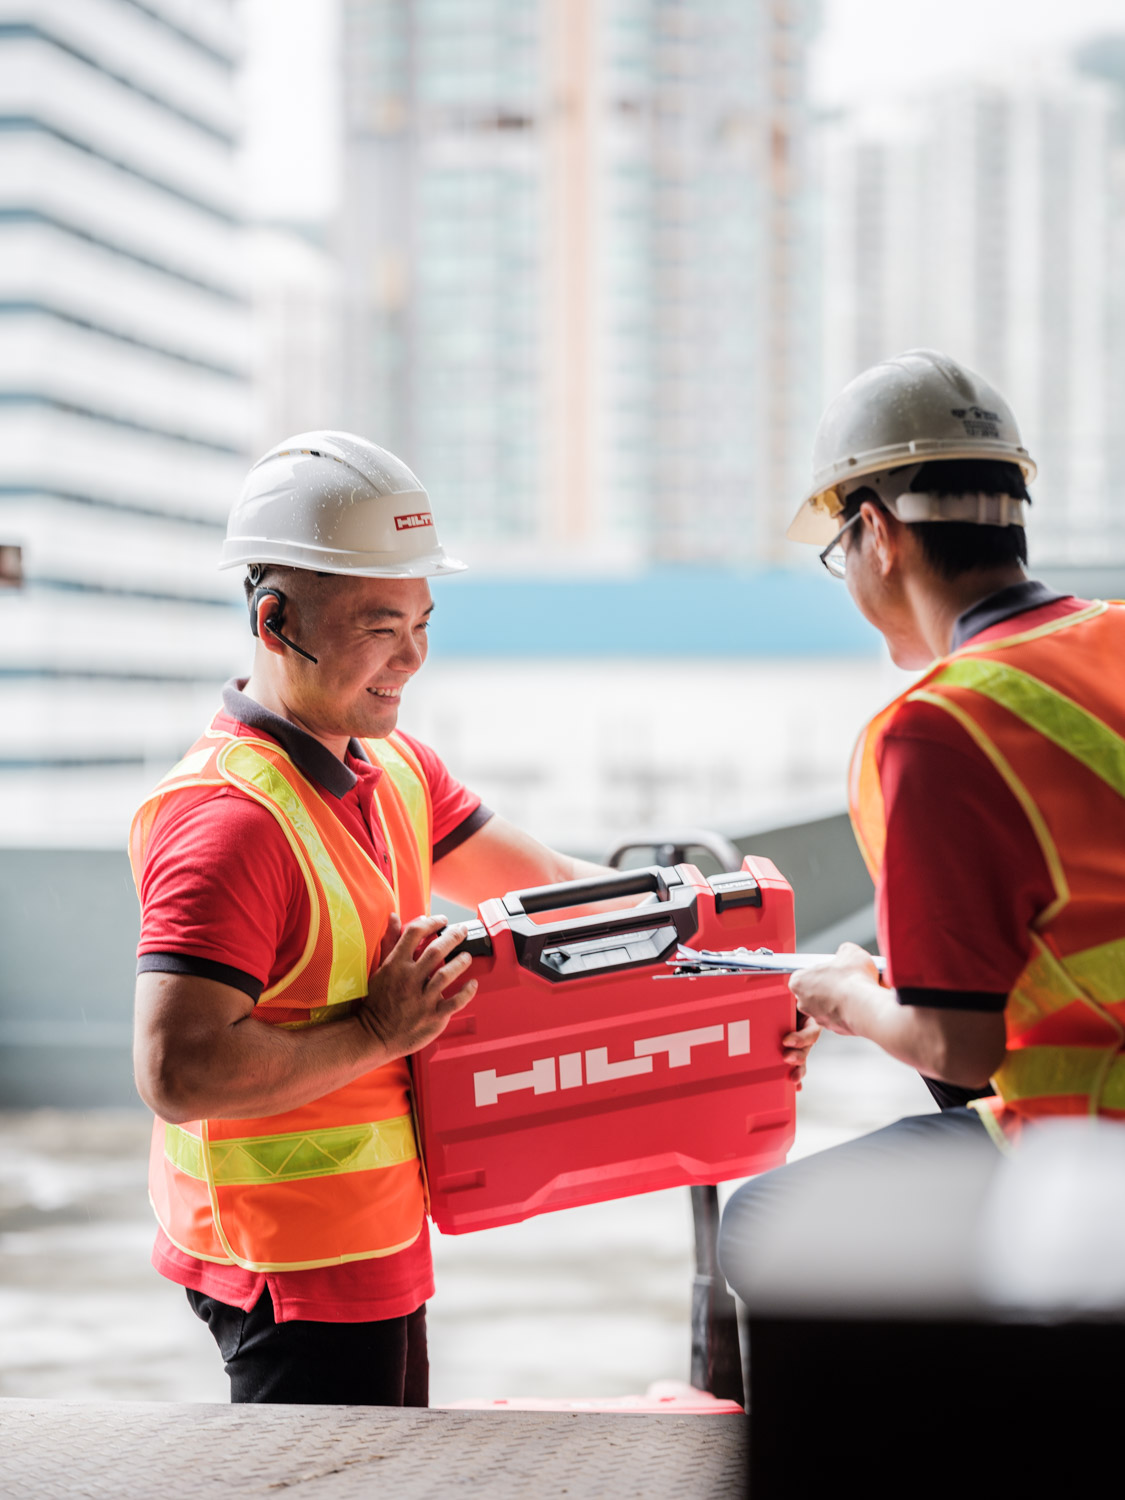 Hilti-Hong-Kong-corporate-3702.jpg